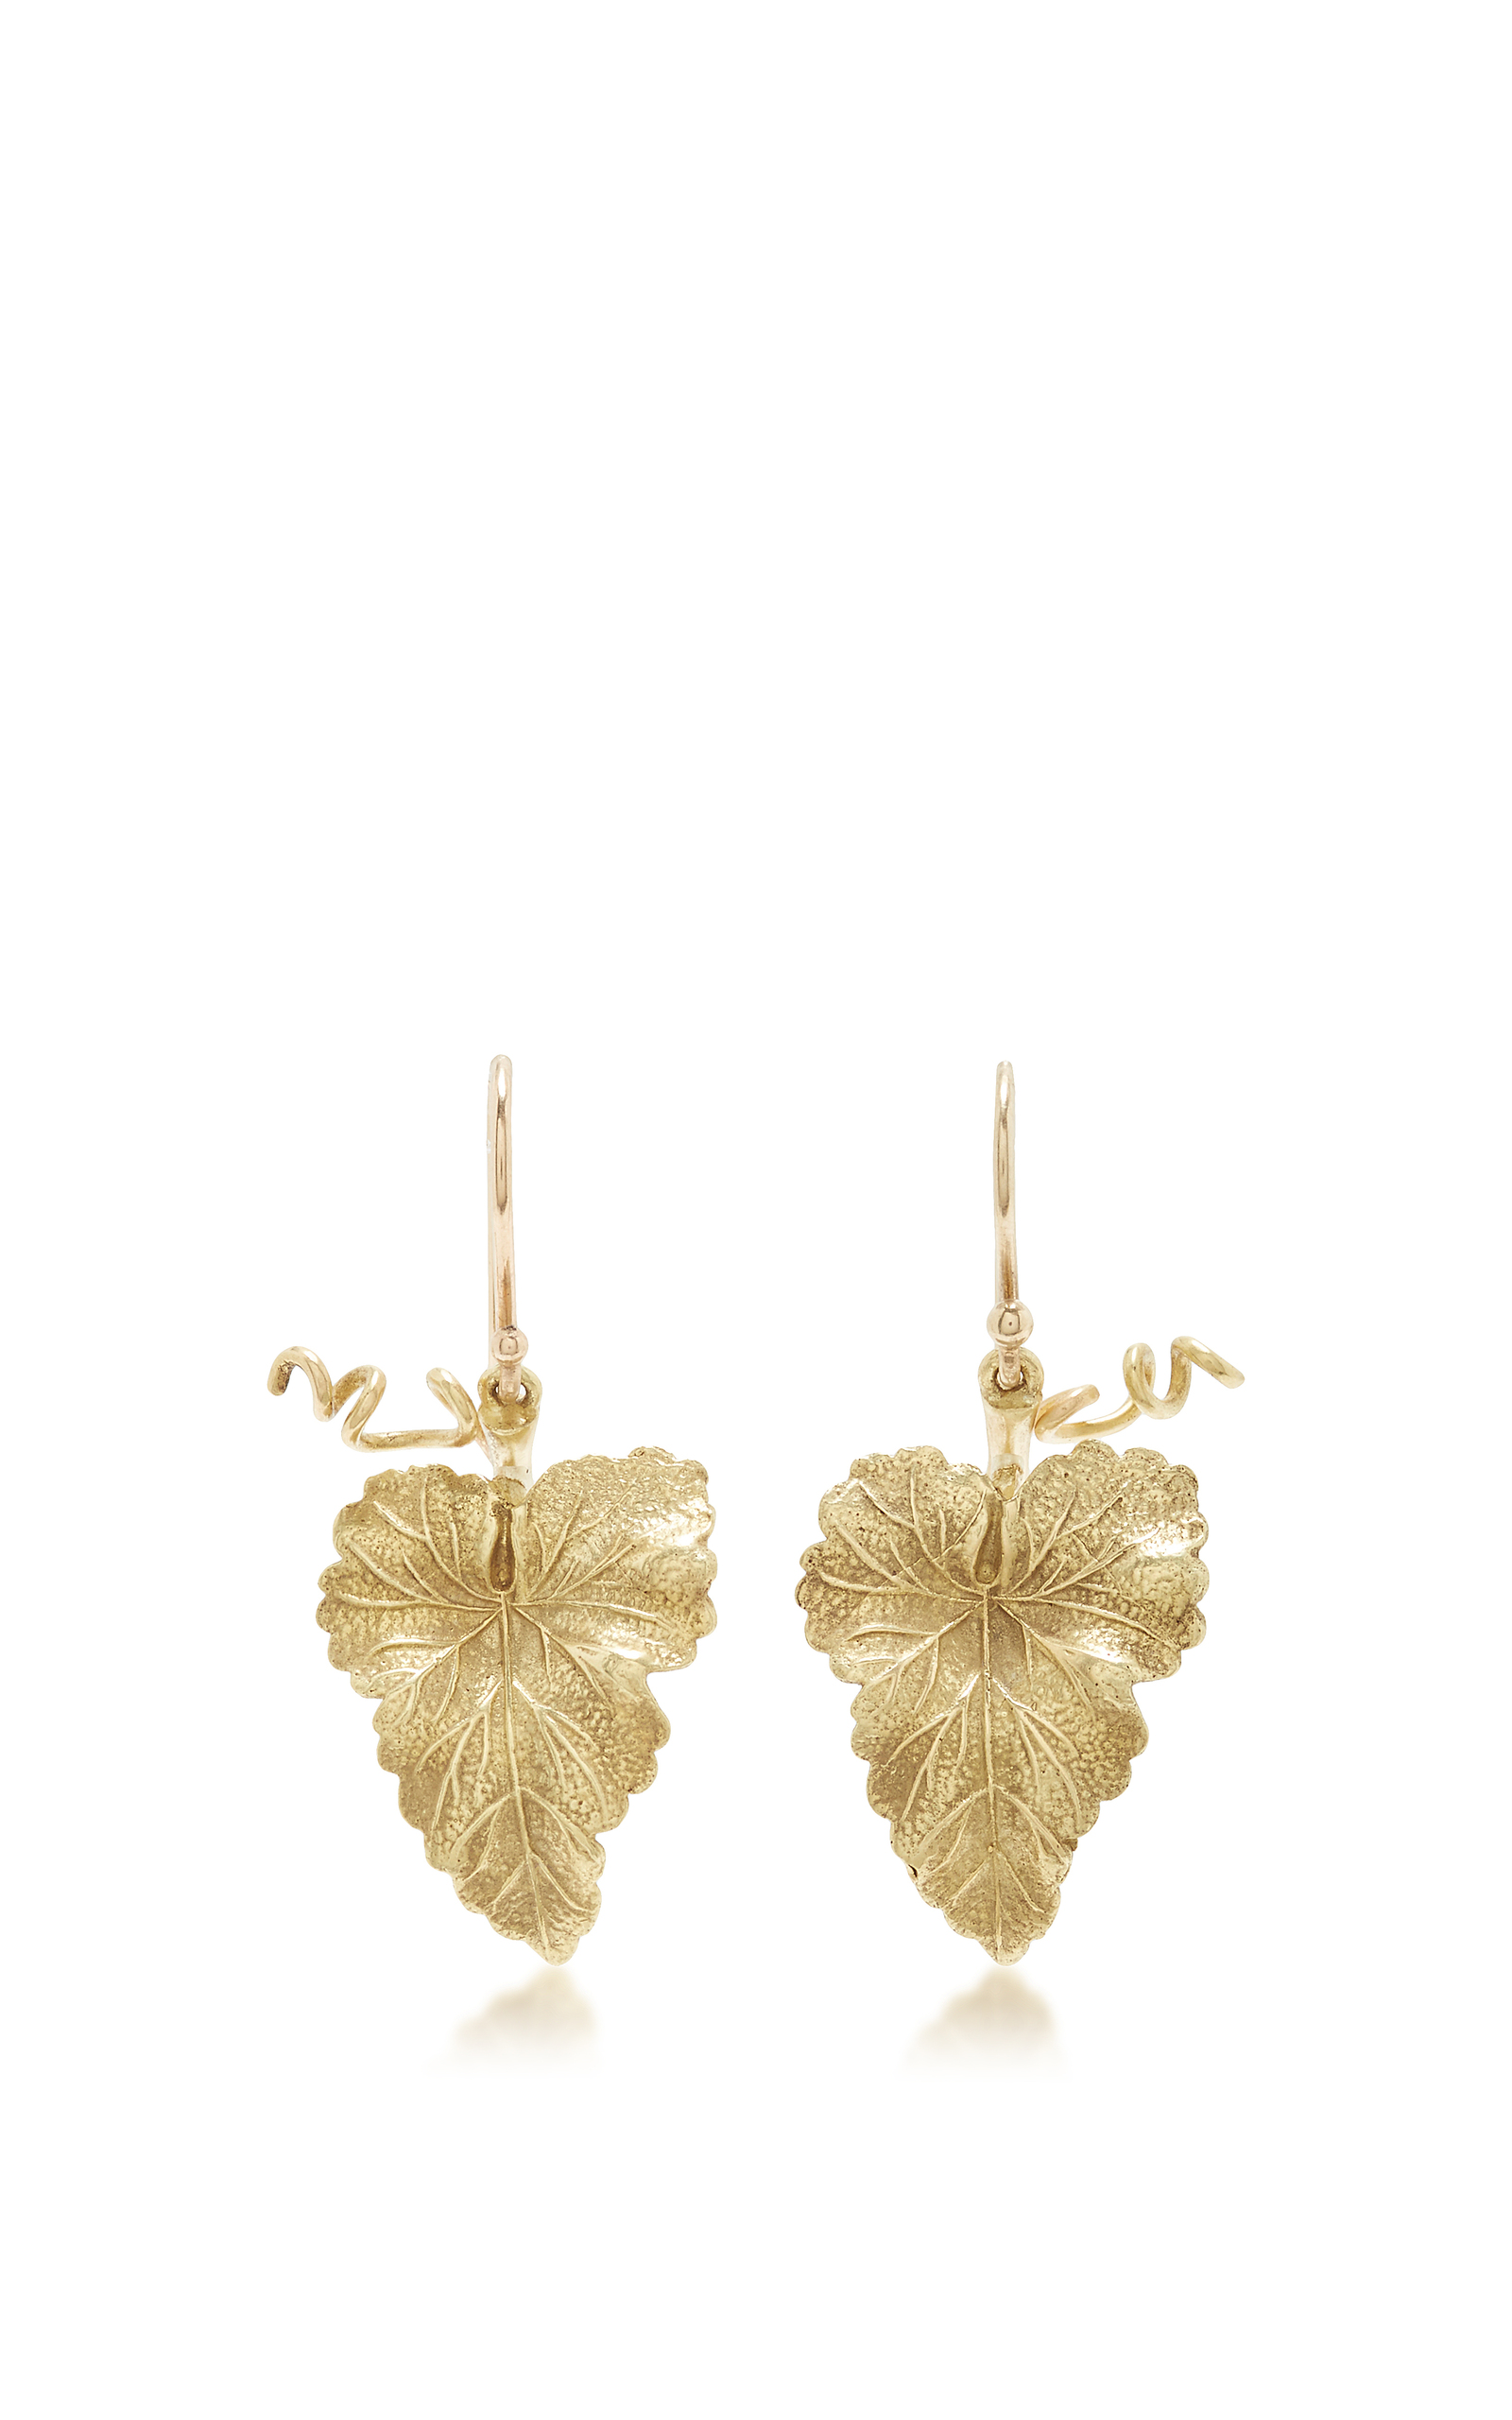 wear masharbiya new archives category sarbani statement studs designer york earrings daily accessories southeast jewelry stud mashrabiya product asian